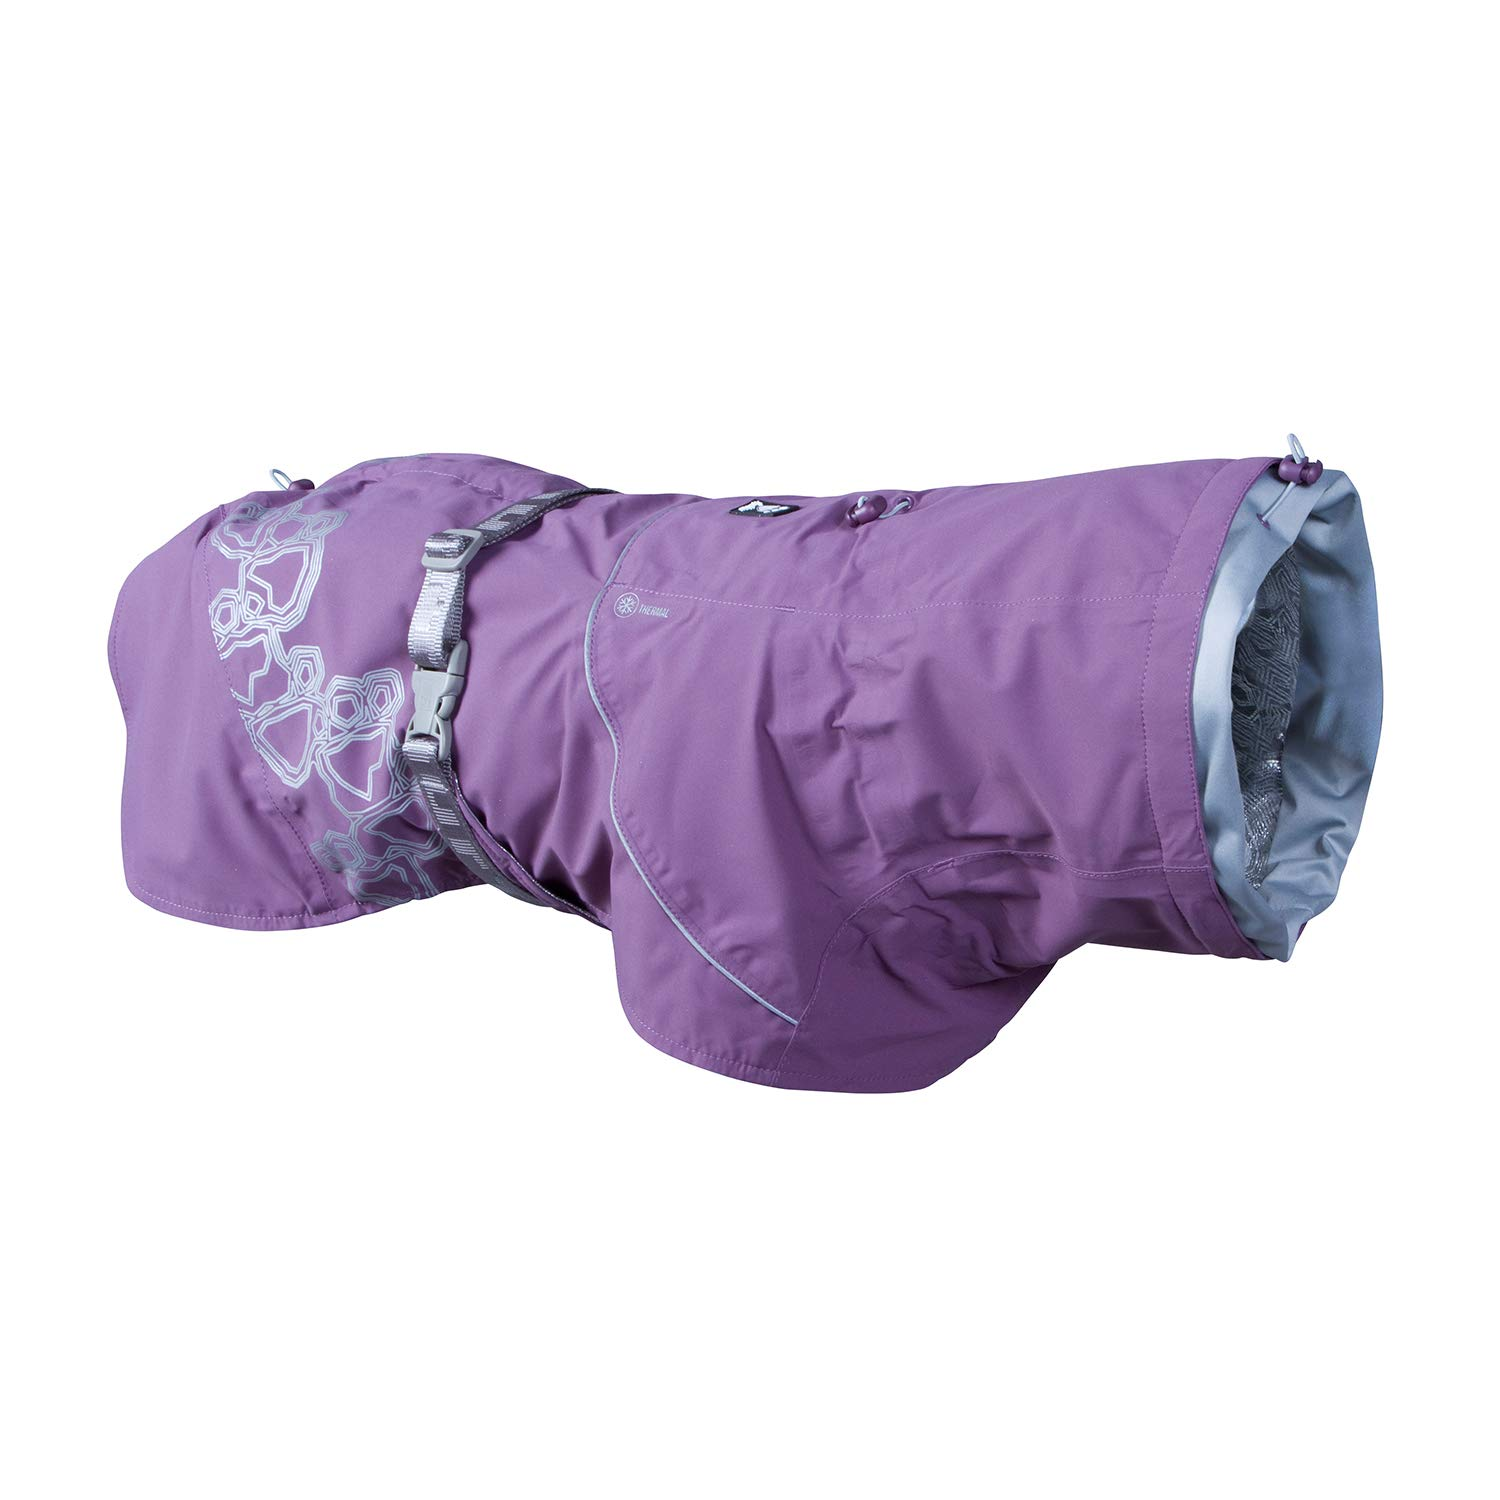 Hurtta Drizzle Coat, Dog Raincoat, Currant, 18 in by Hurtta (Image #1)